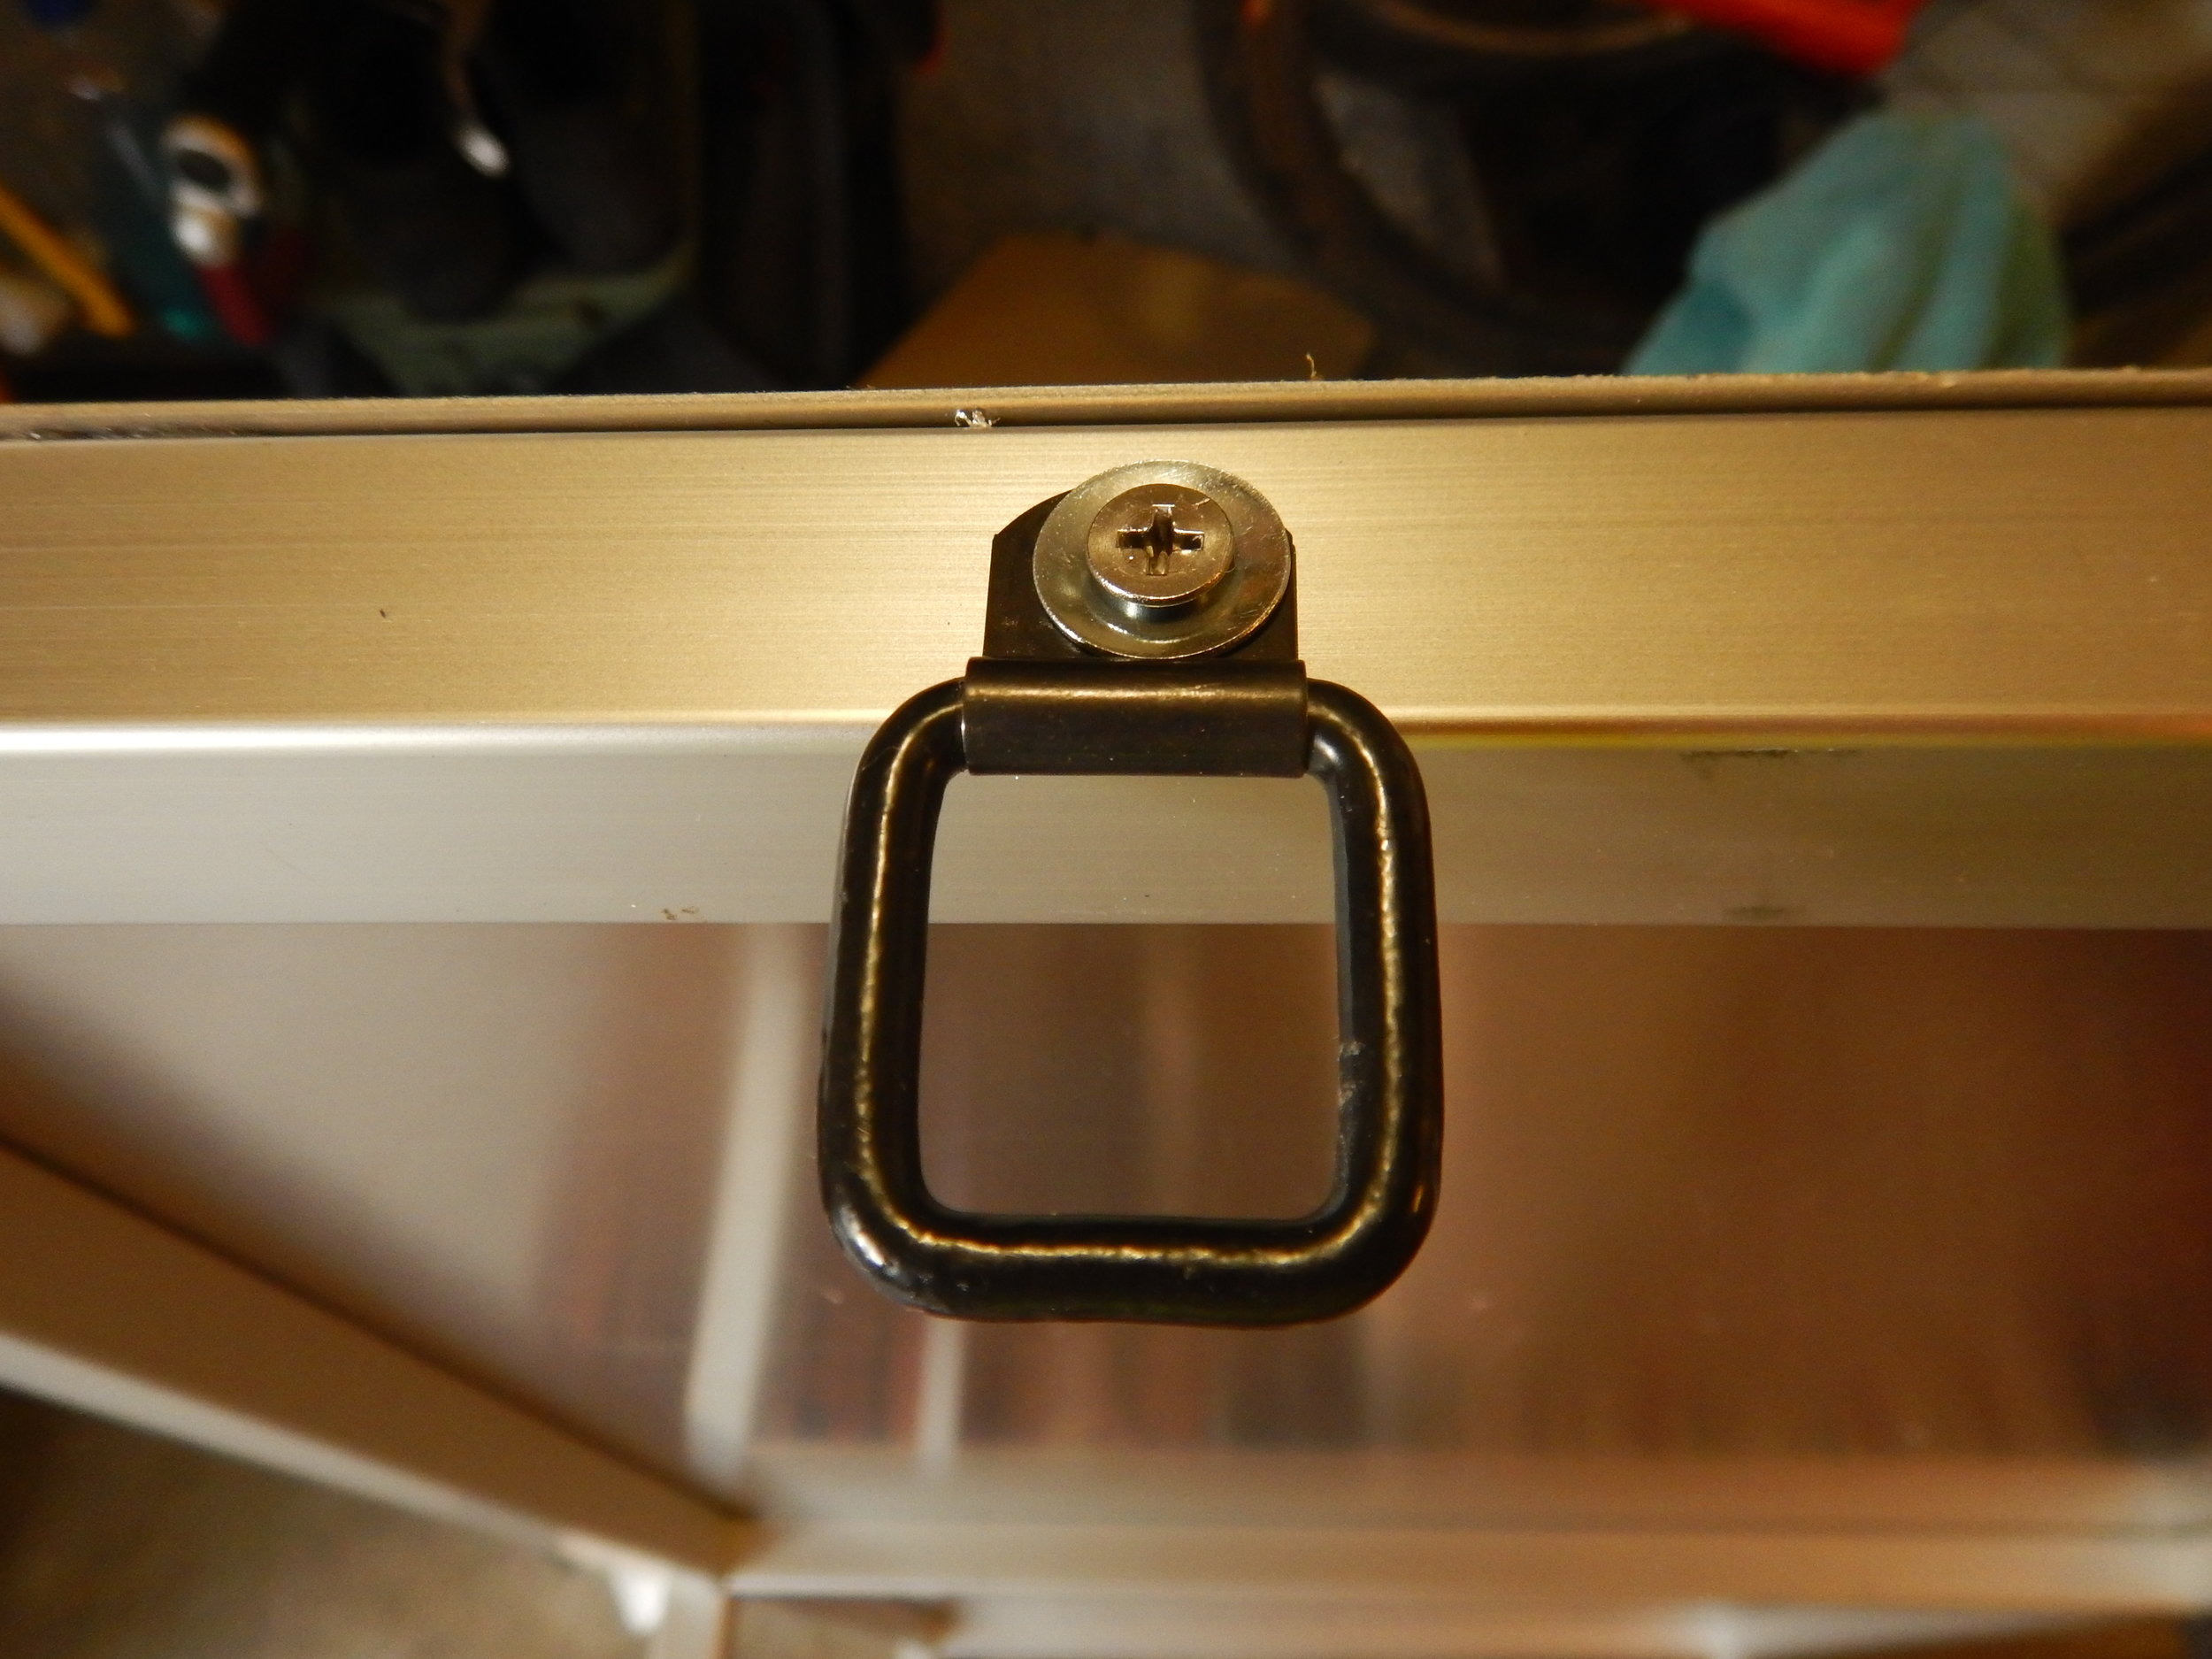 single-eyelet D-ring bolted to the shelf frame rail.